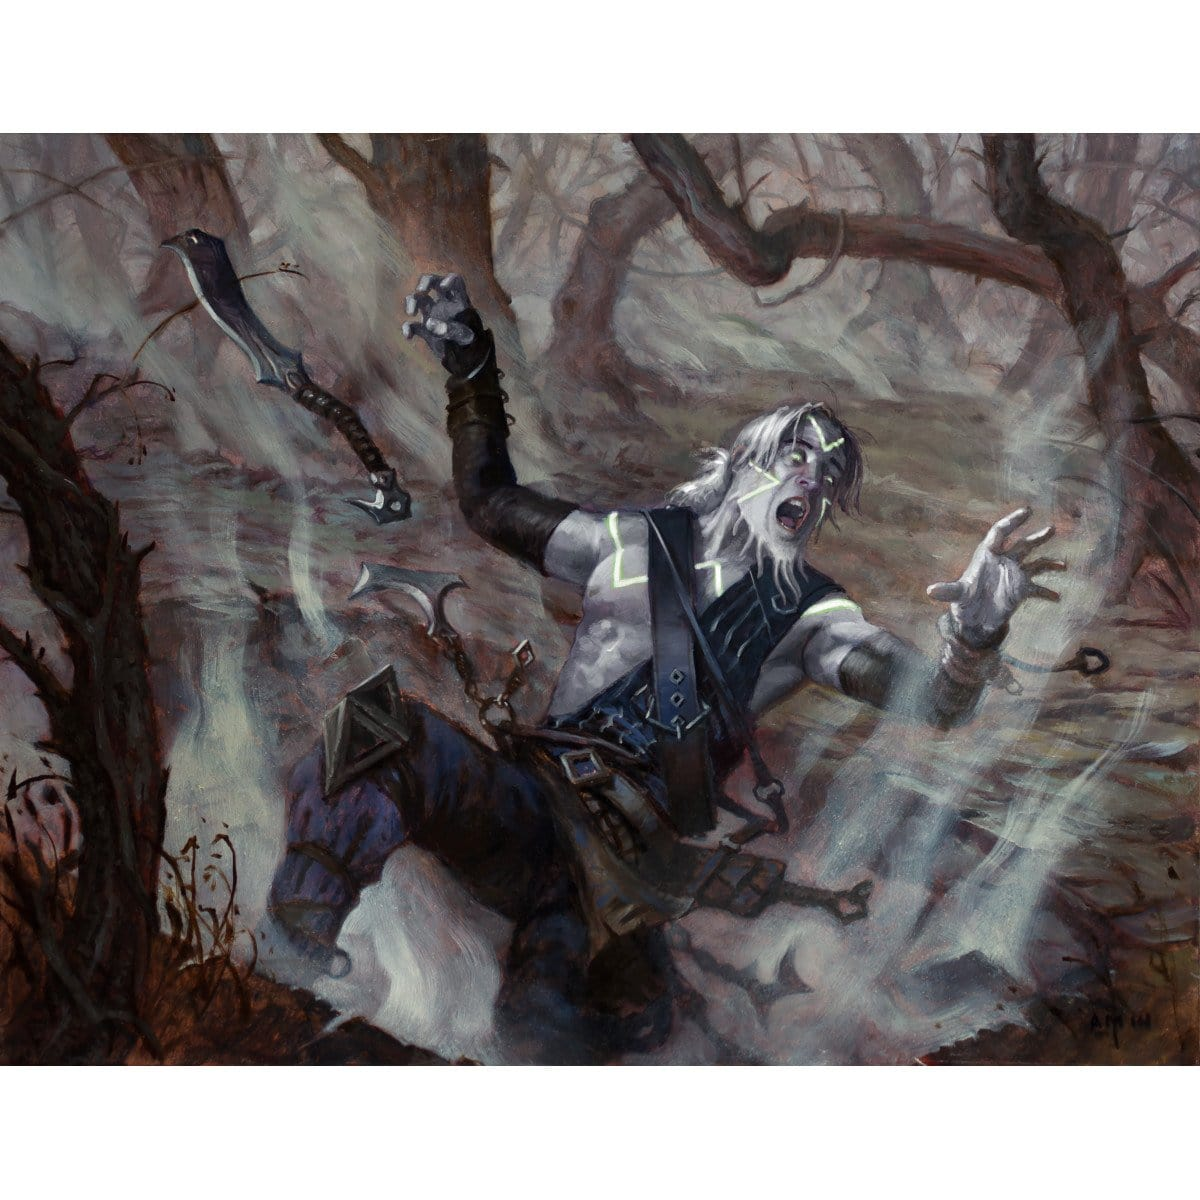 Ruinous Path Print - Print - Original Magic Art - Accessories for Magic the Gathering and other card games